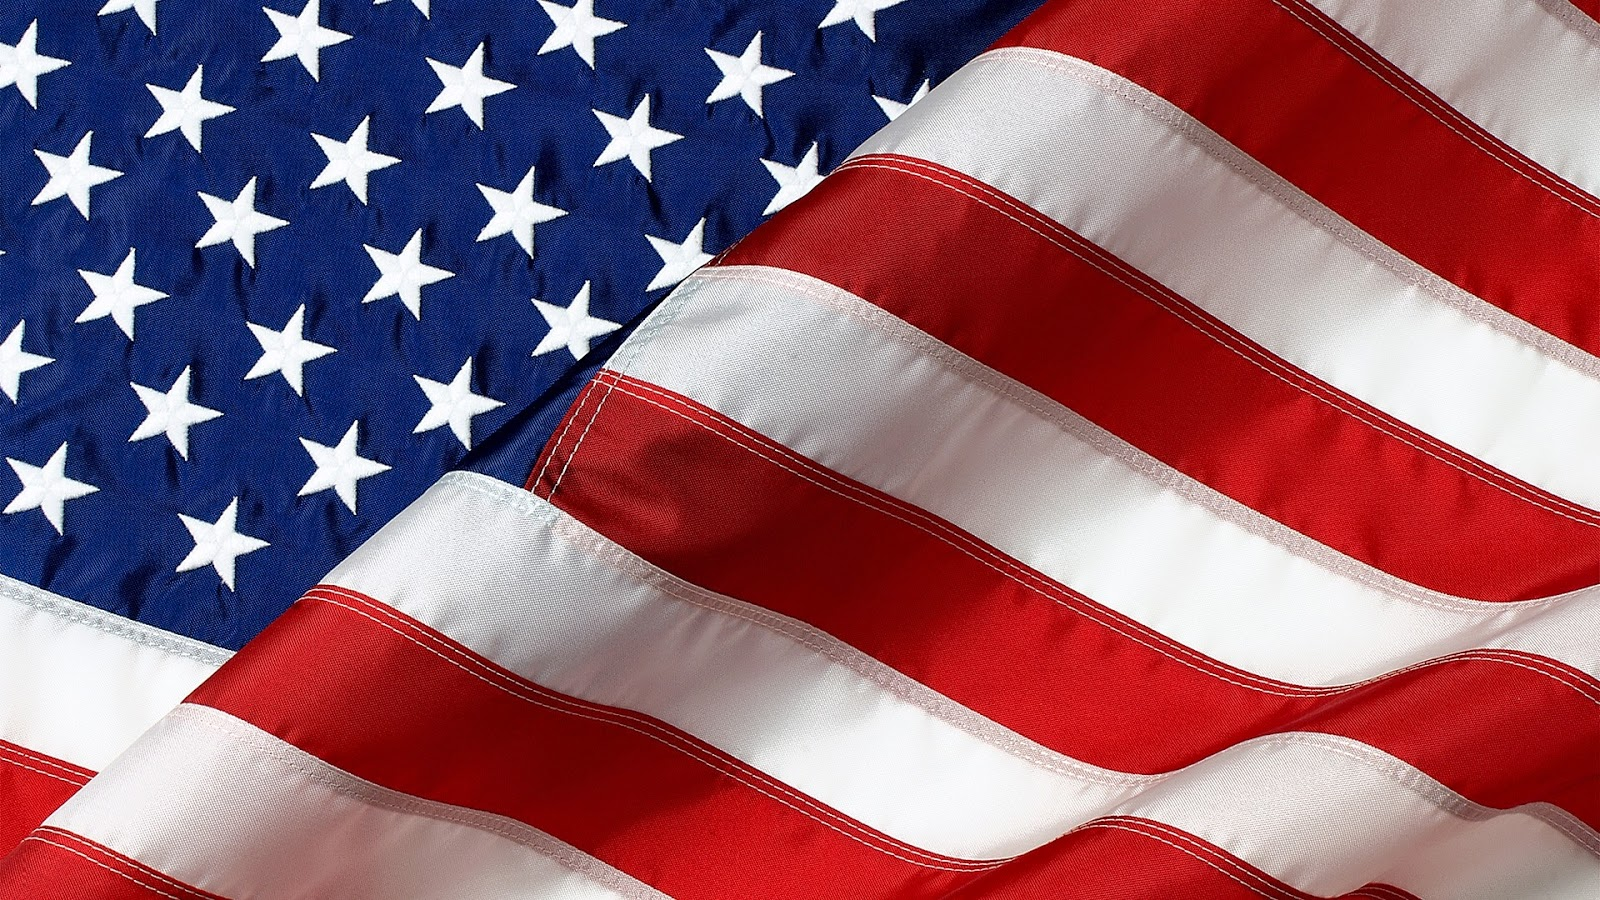 Cool American Flag with White Stars and Red Strips for PC Desktop Backgrounds